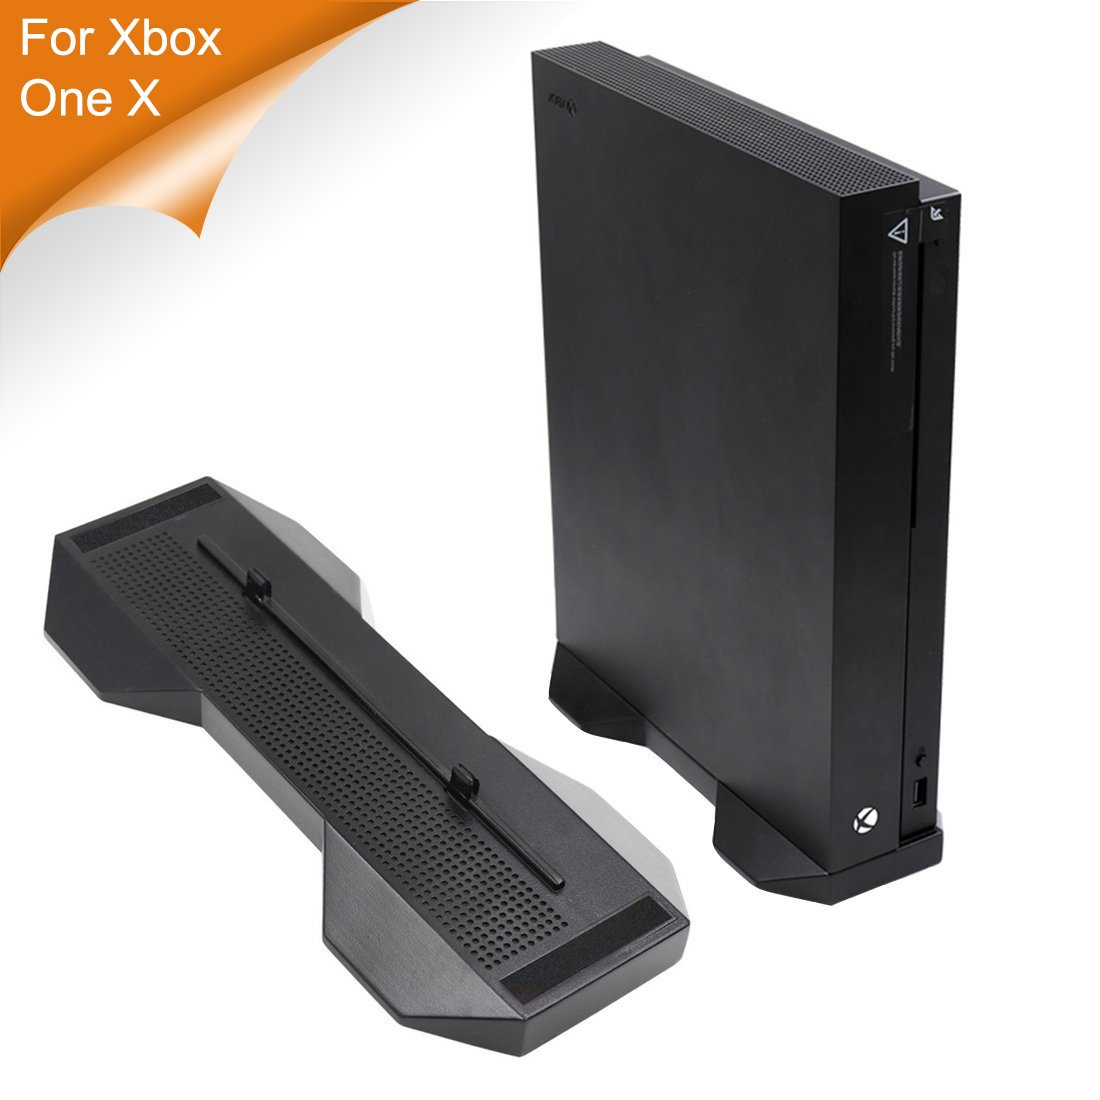 LeSB Vertical Console Stand for Xbox One X, Color Negro: Amazon.es: Hogar